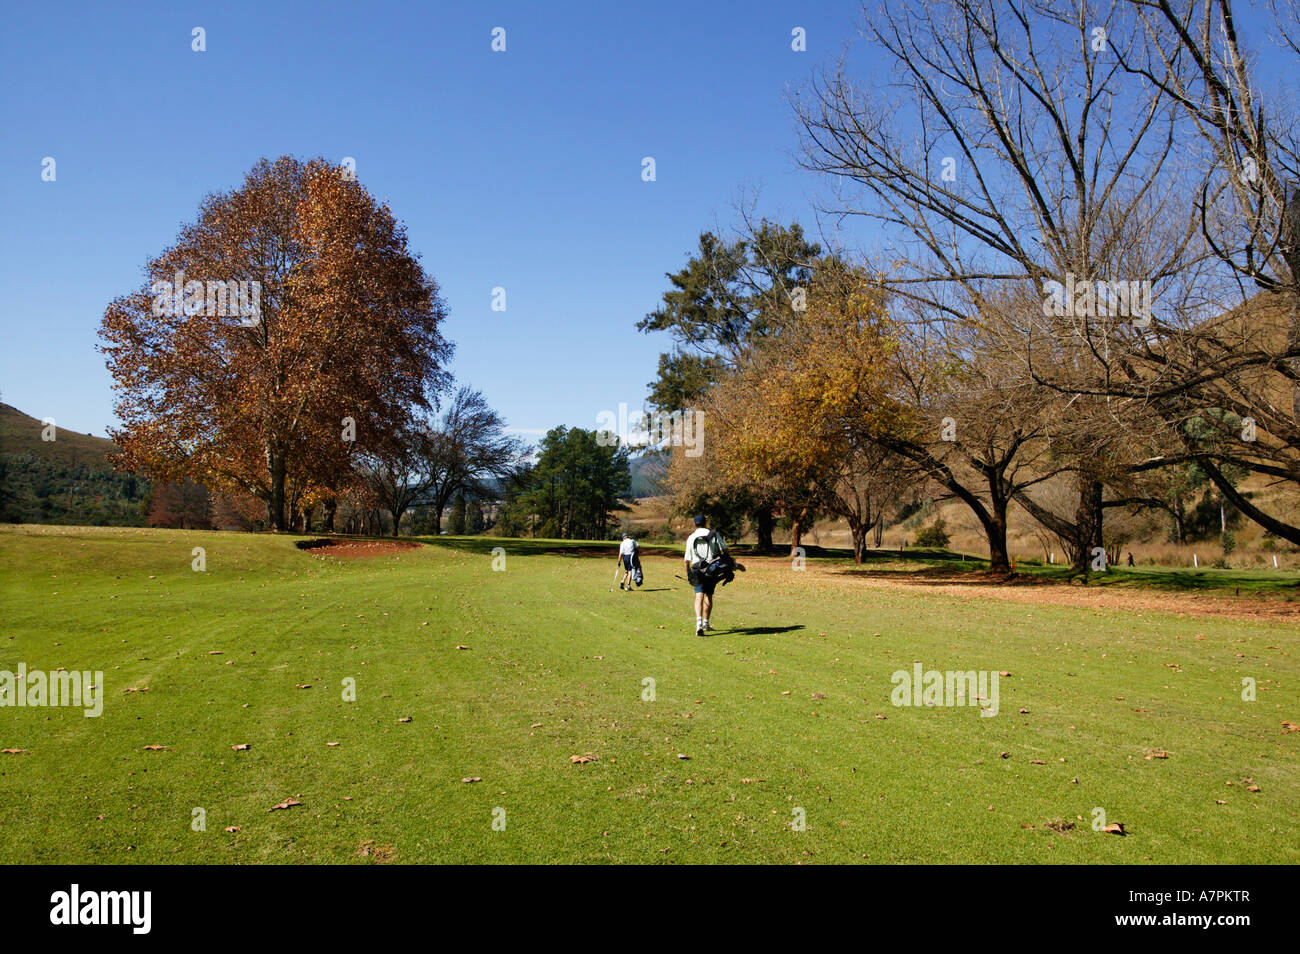 Two golfers walking on the fairway at Pilgrims Rest golf club with trees in autumn colours South Africa - Stock Image